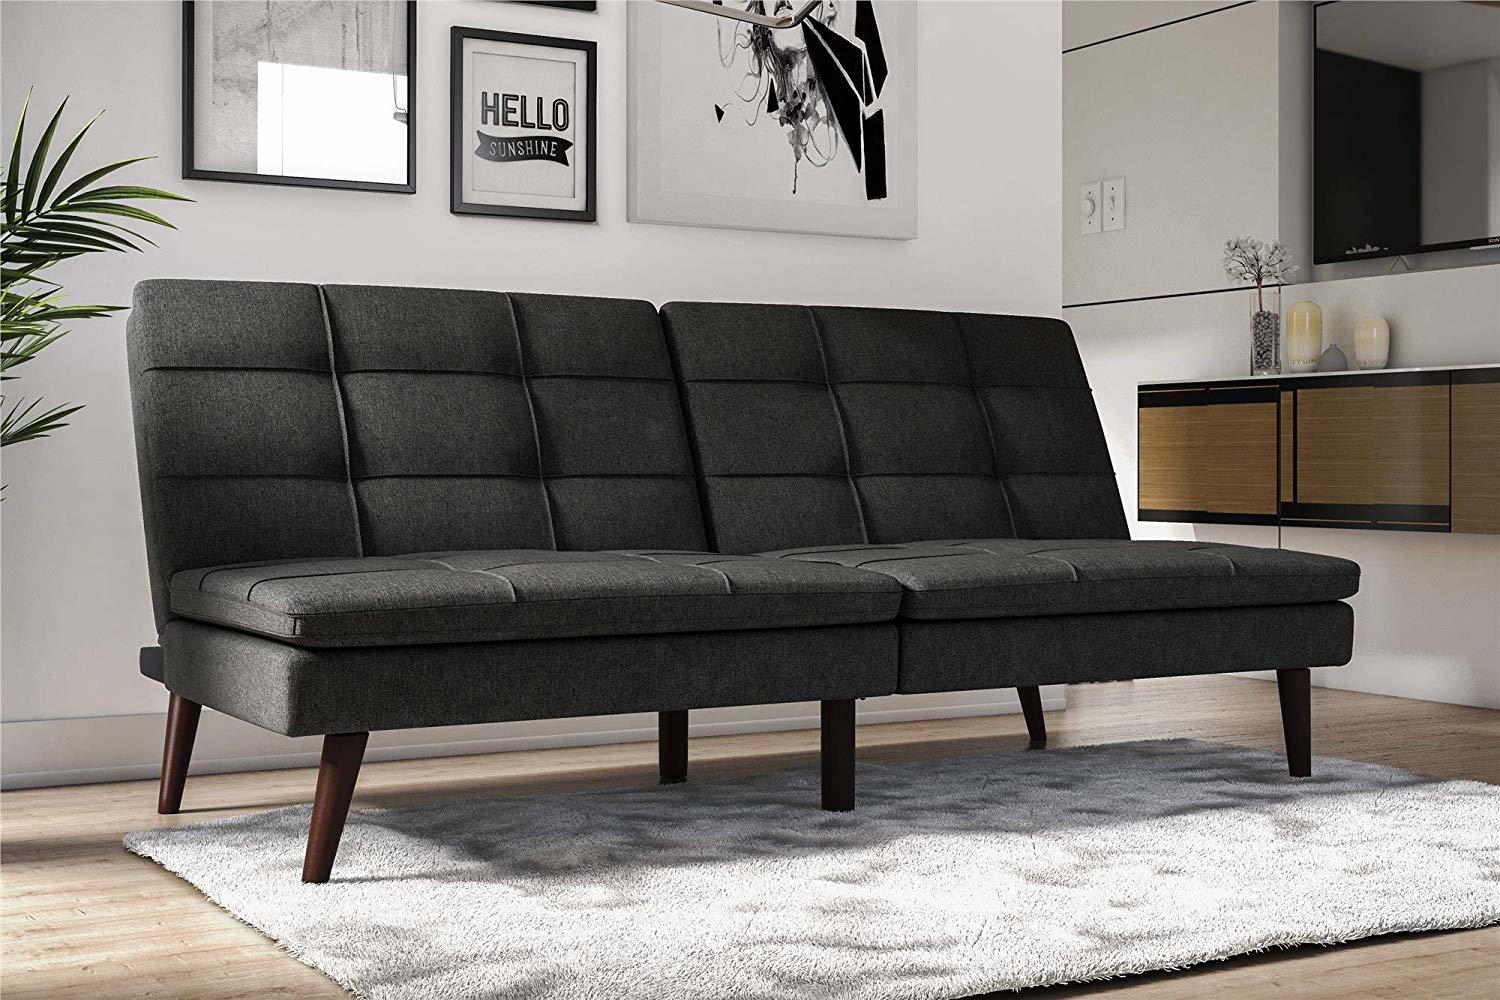 Surprising Most Comfortable Sleeper Sofas In 2019 Complete Buyers Guide Dailytribune Chair Design For Home Dailytribuneorg